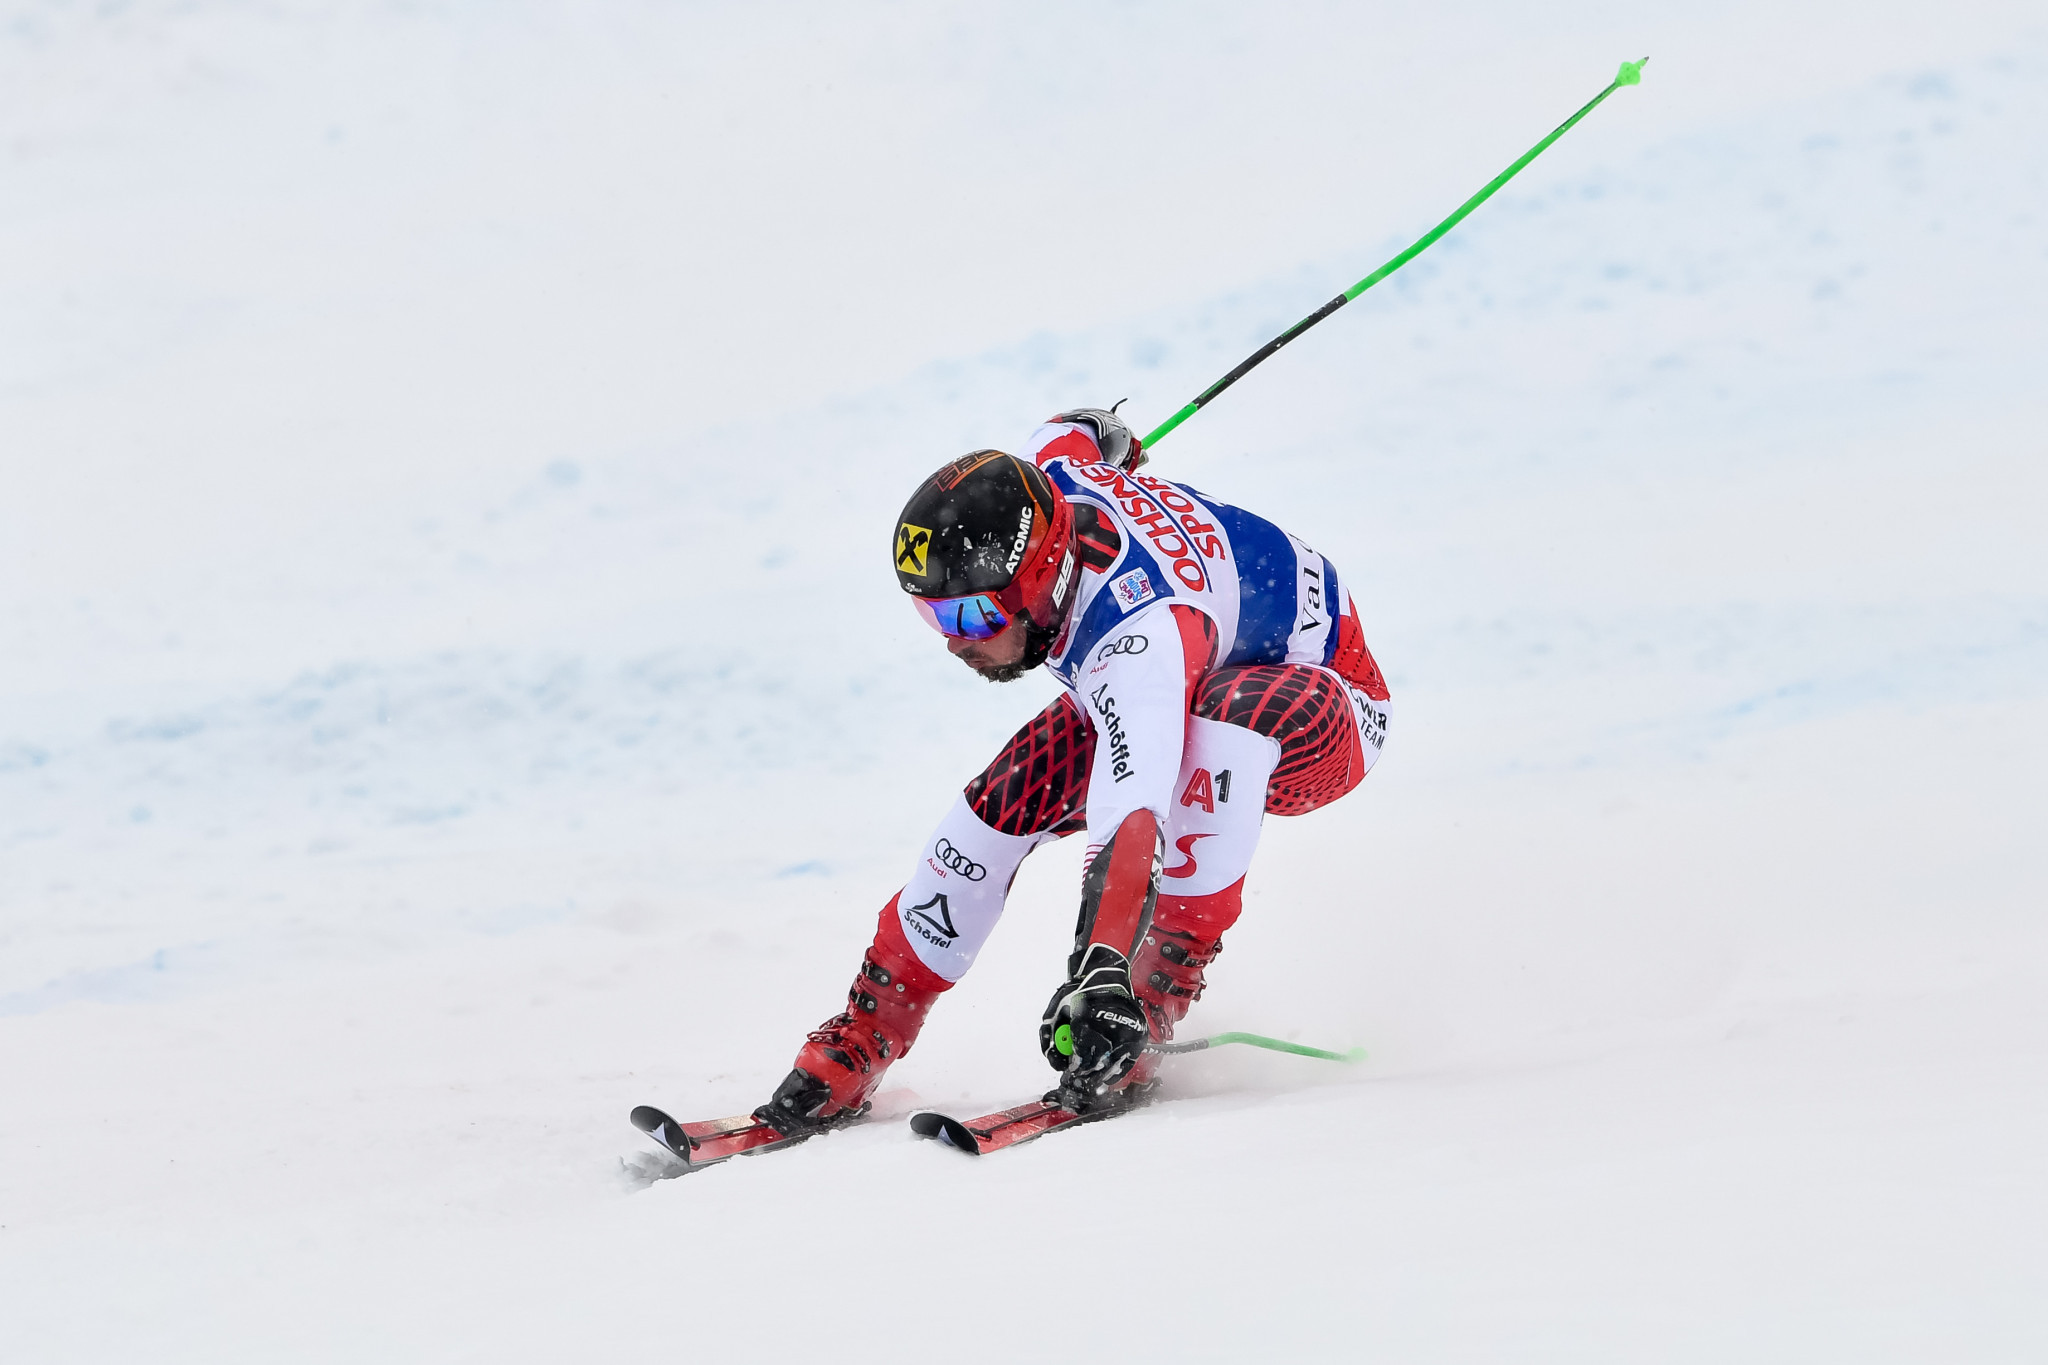 Marcel Hirscher recorded a 60th victory on the World Cup circuit ©Getty Images